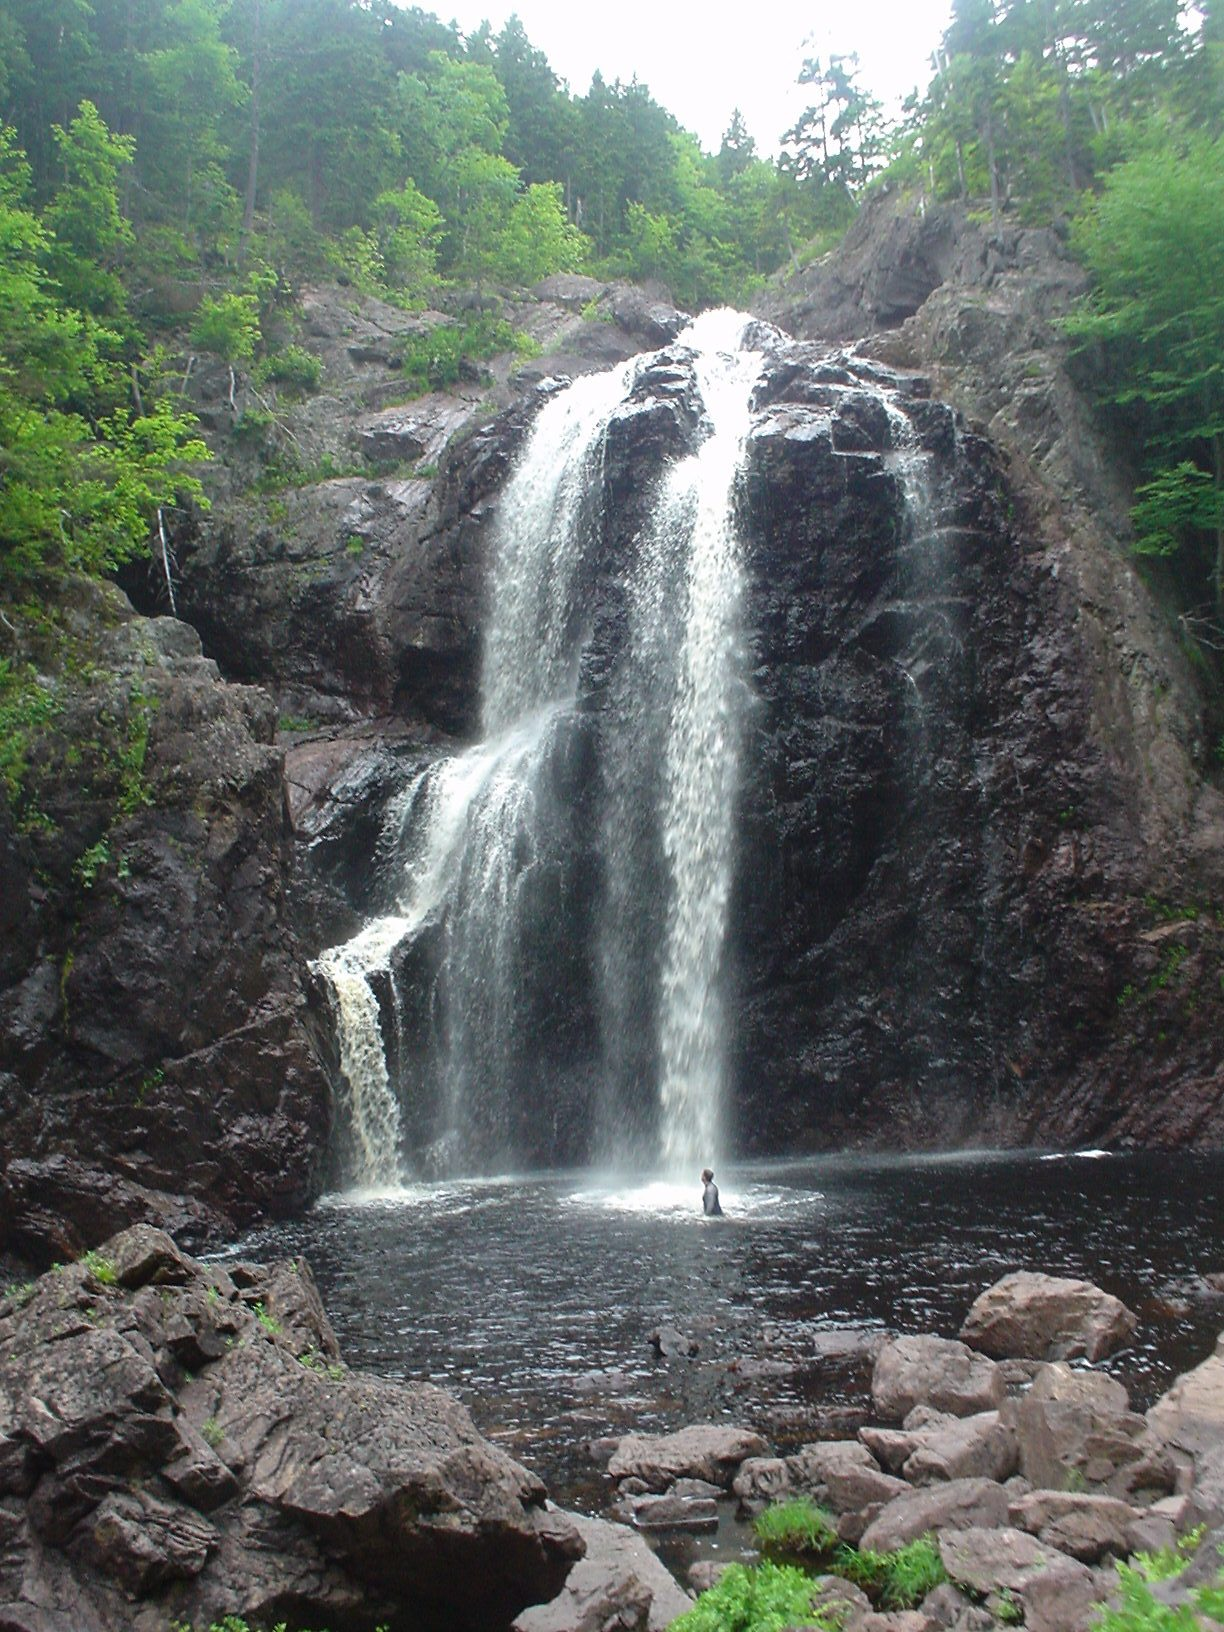 Waterfalls of Moose River Gorge – Seeking Waterfalls